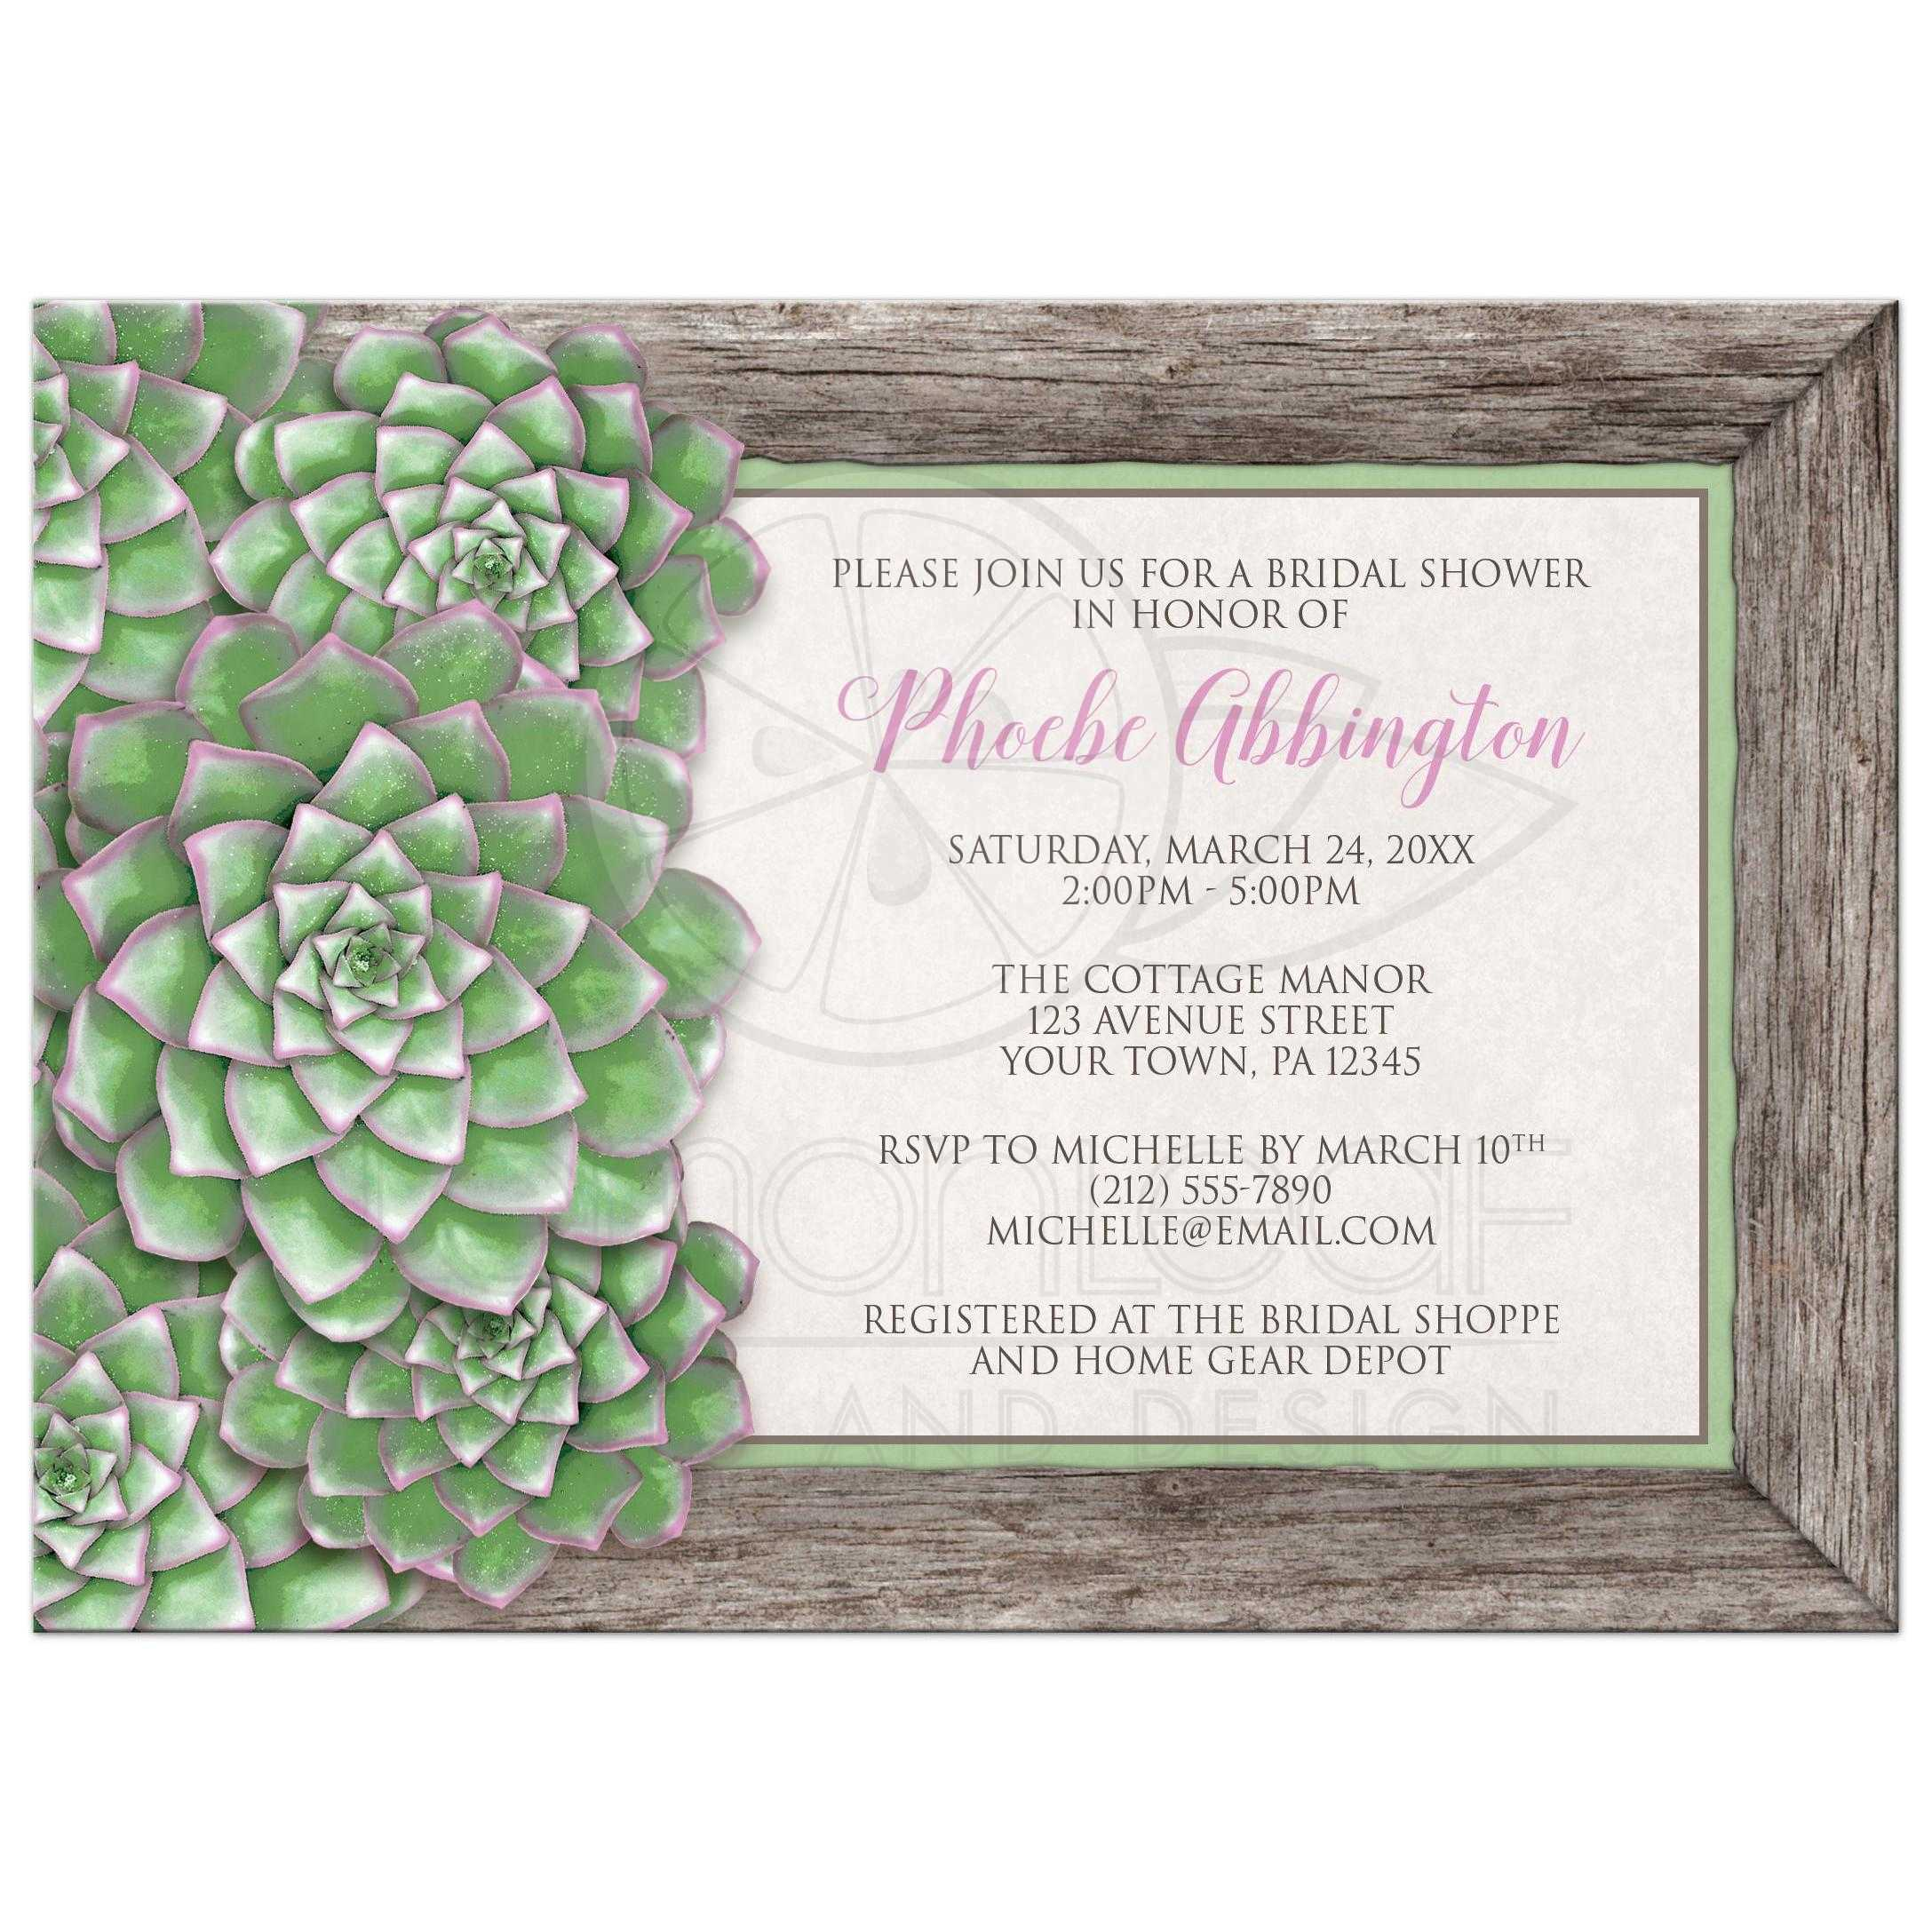 Bridal Shower Invitations Green And Pink Succulent Wood